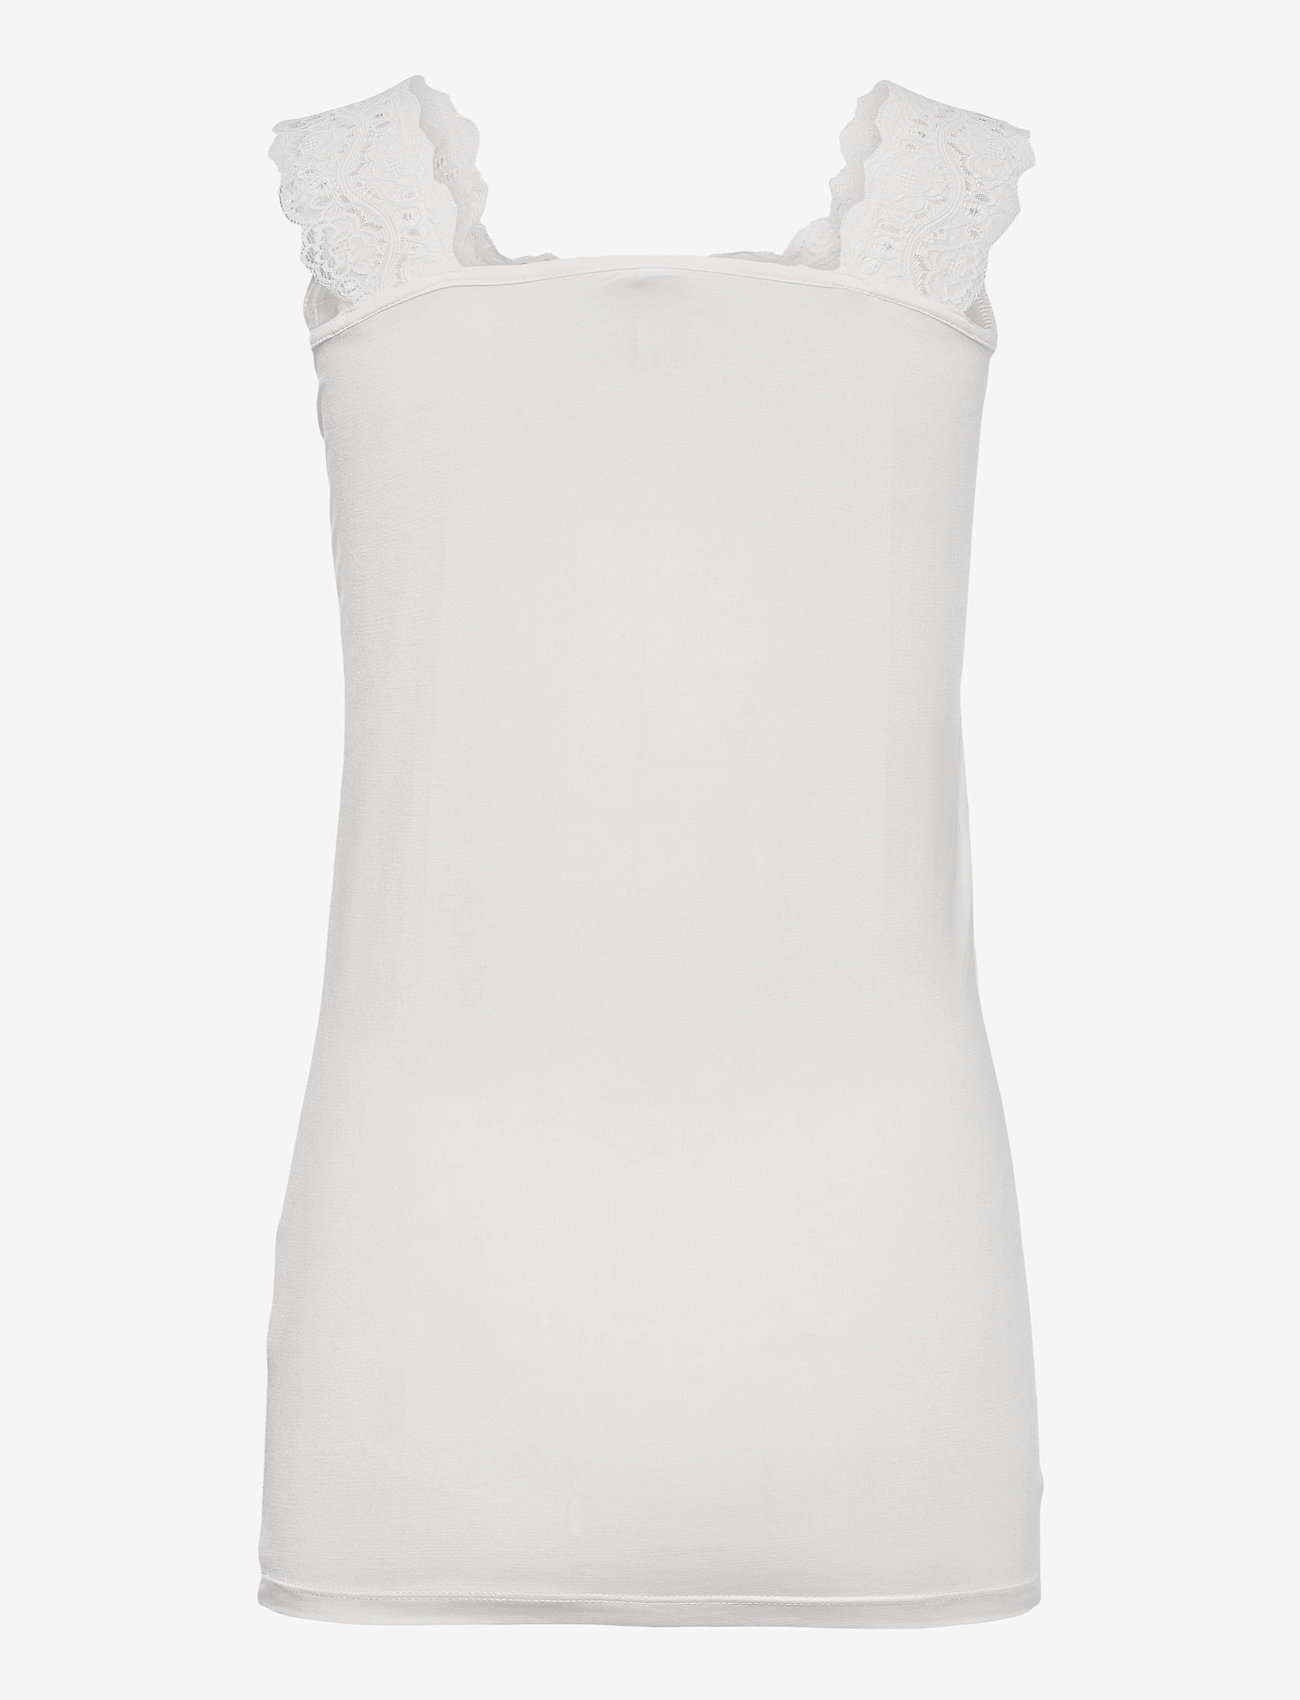 Soyaconcept - SC-MARICA - t-shirt & tops - offwhite - 1